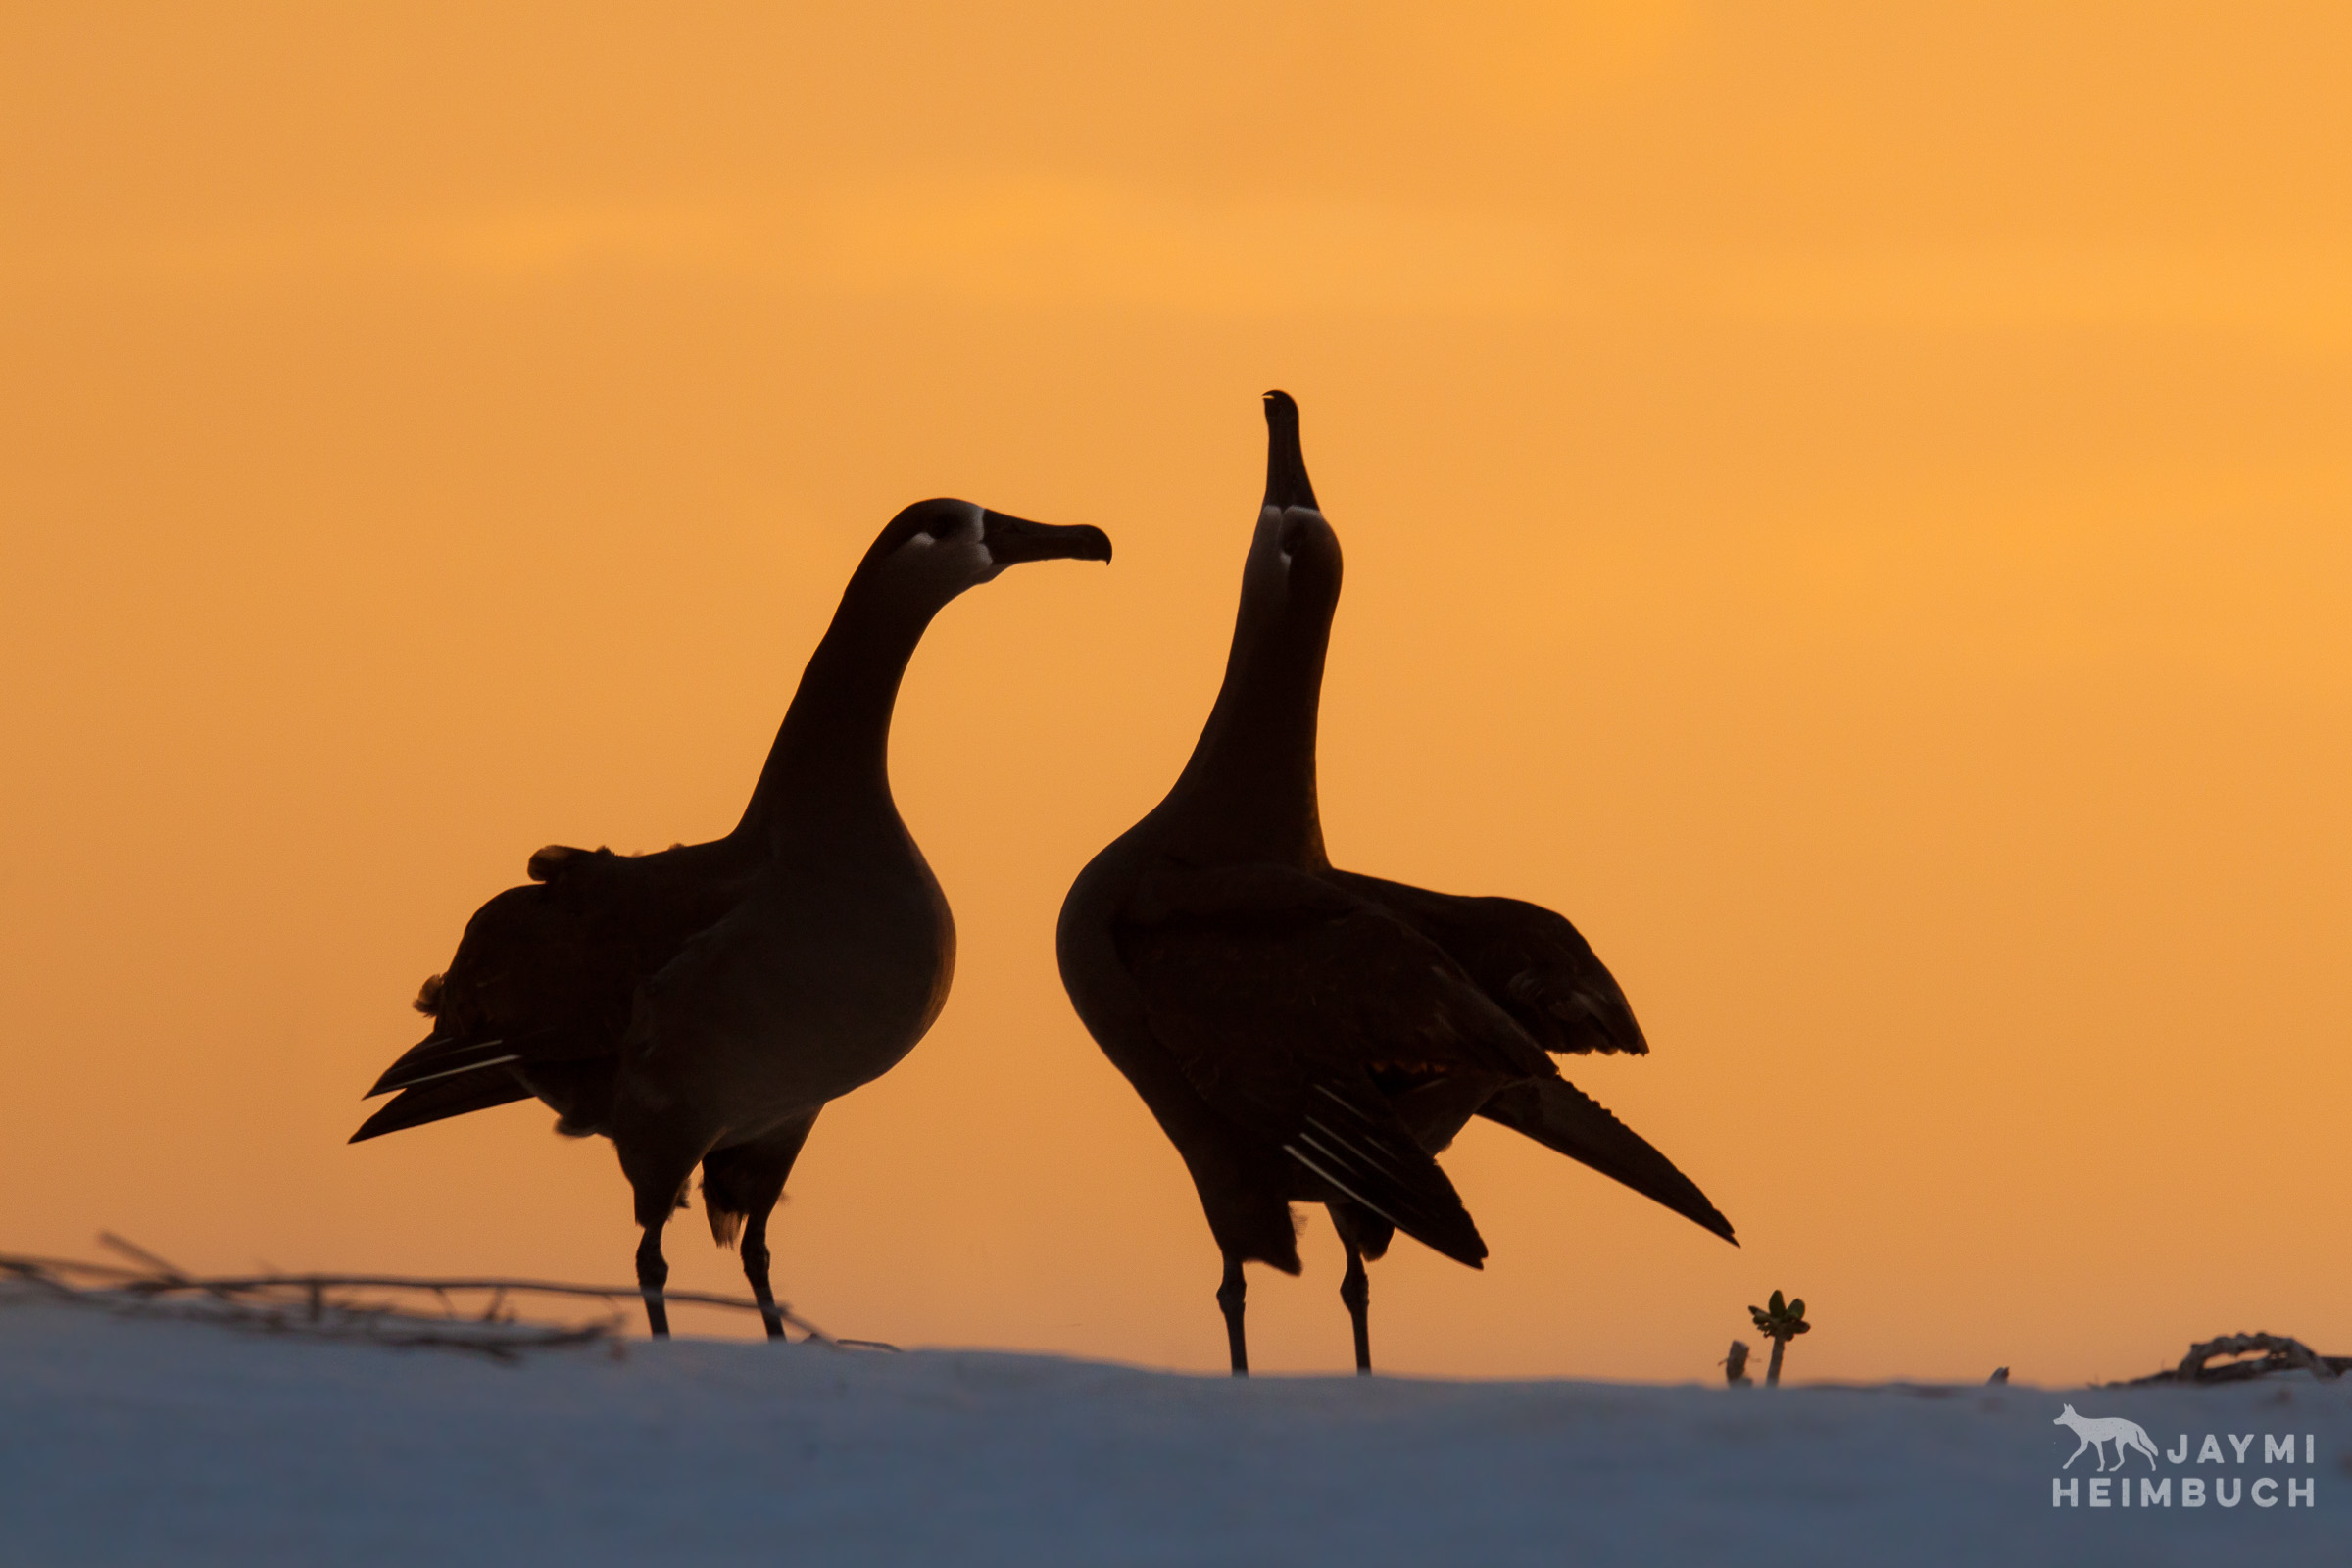 Black-footed albatross (Phoebastria nigripes) adult male and female in courtship dance, Midway Atoll